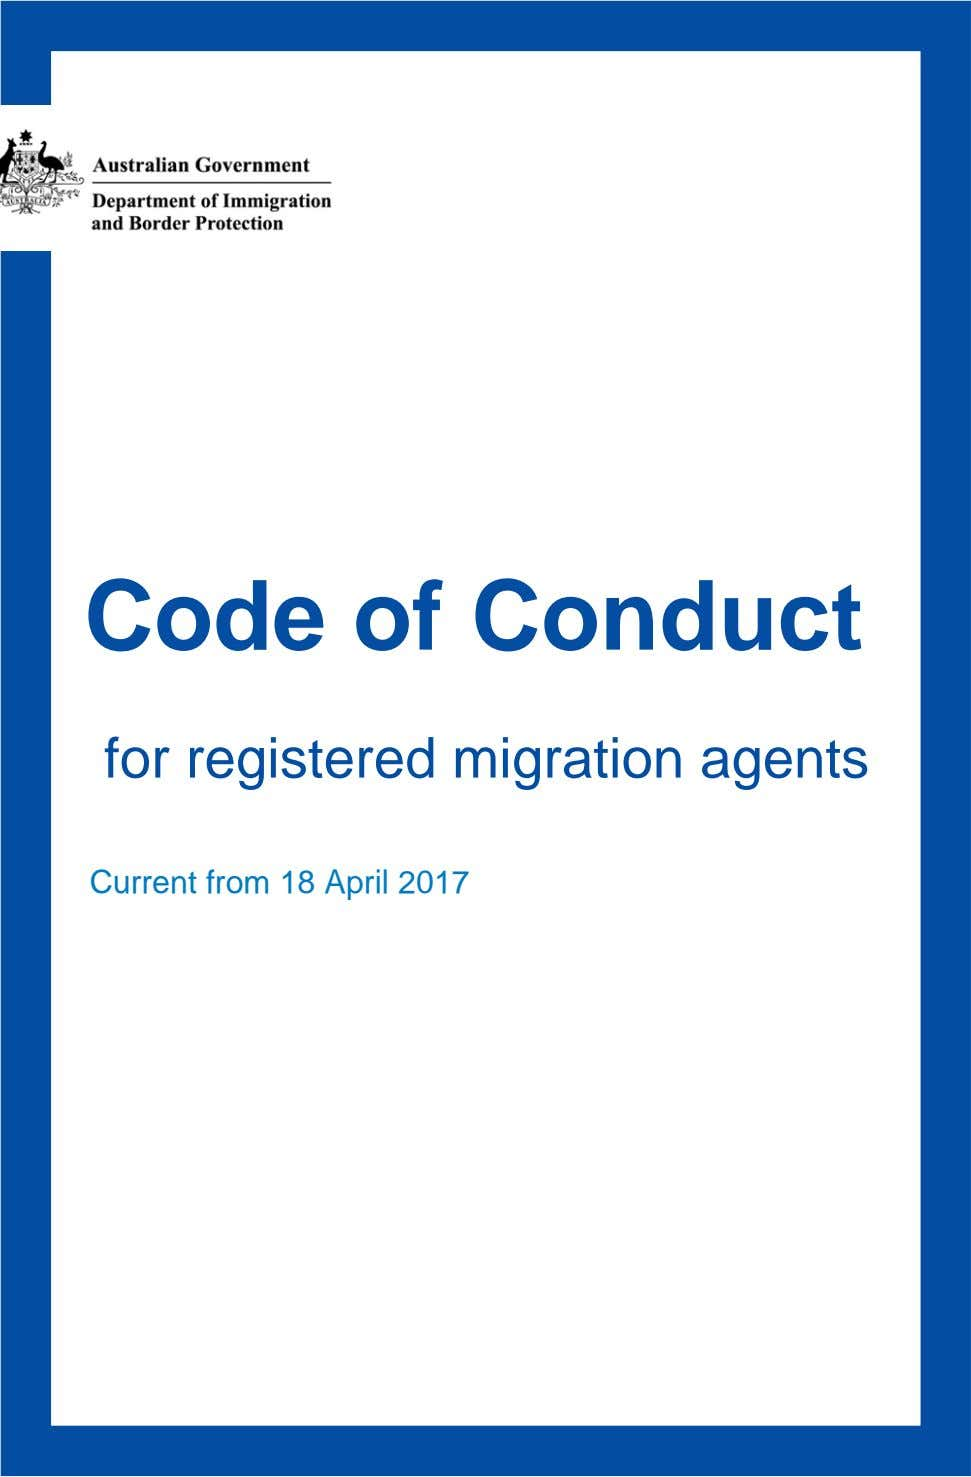 Code of Conduct for registered migration agents Current from 18 April 2017